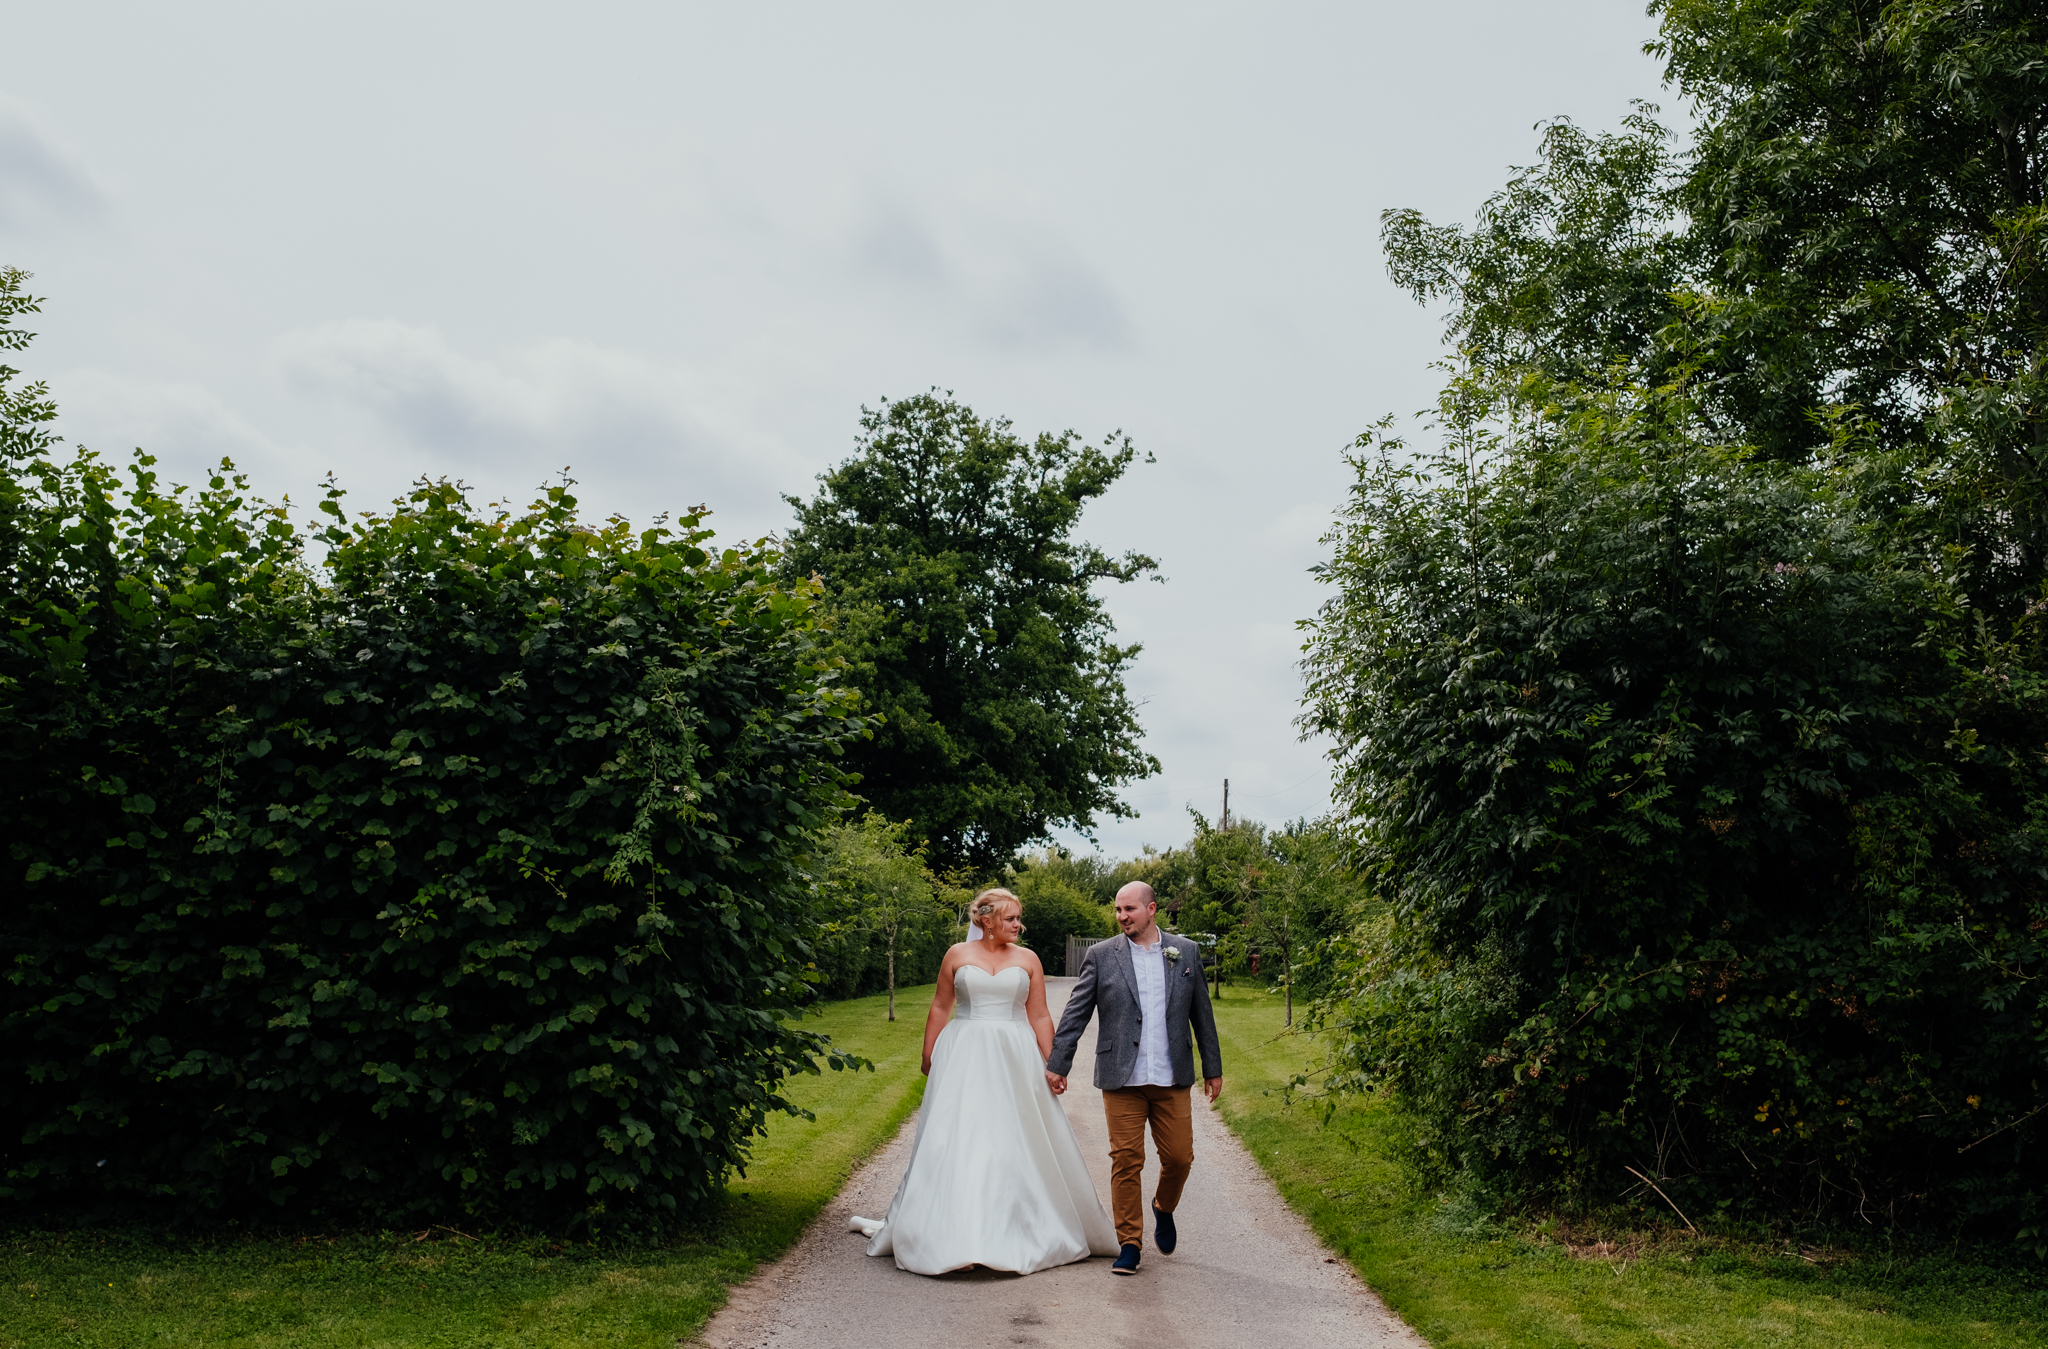 Couple portraits at Rumbolds Farm wedding